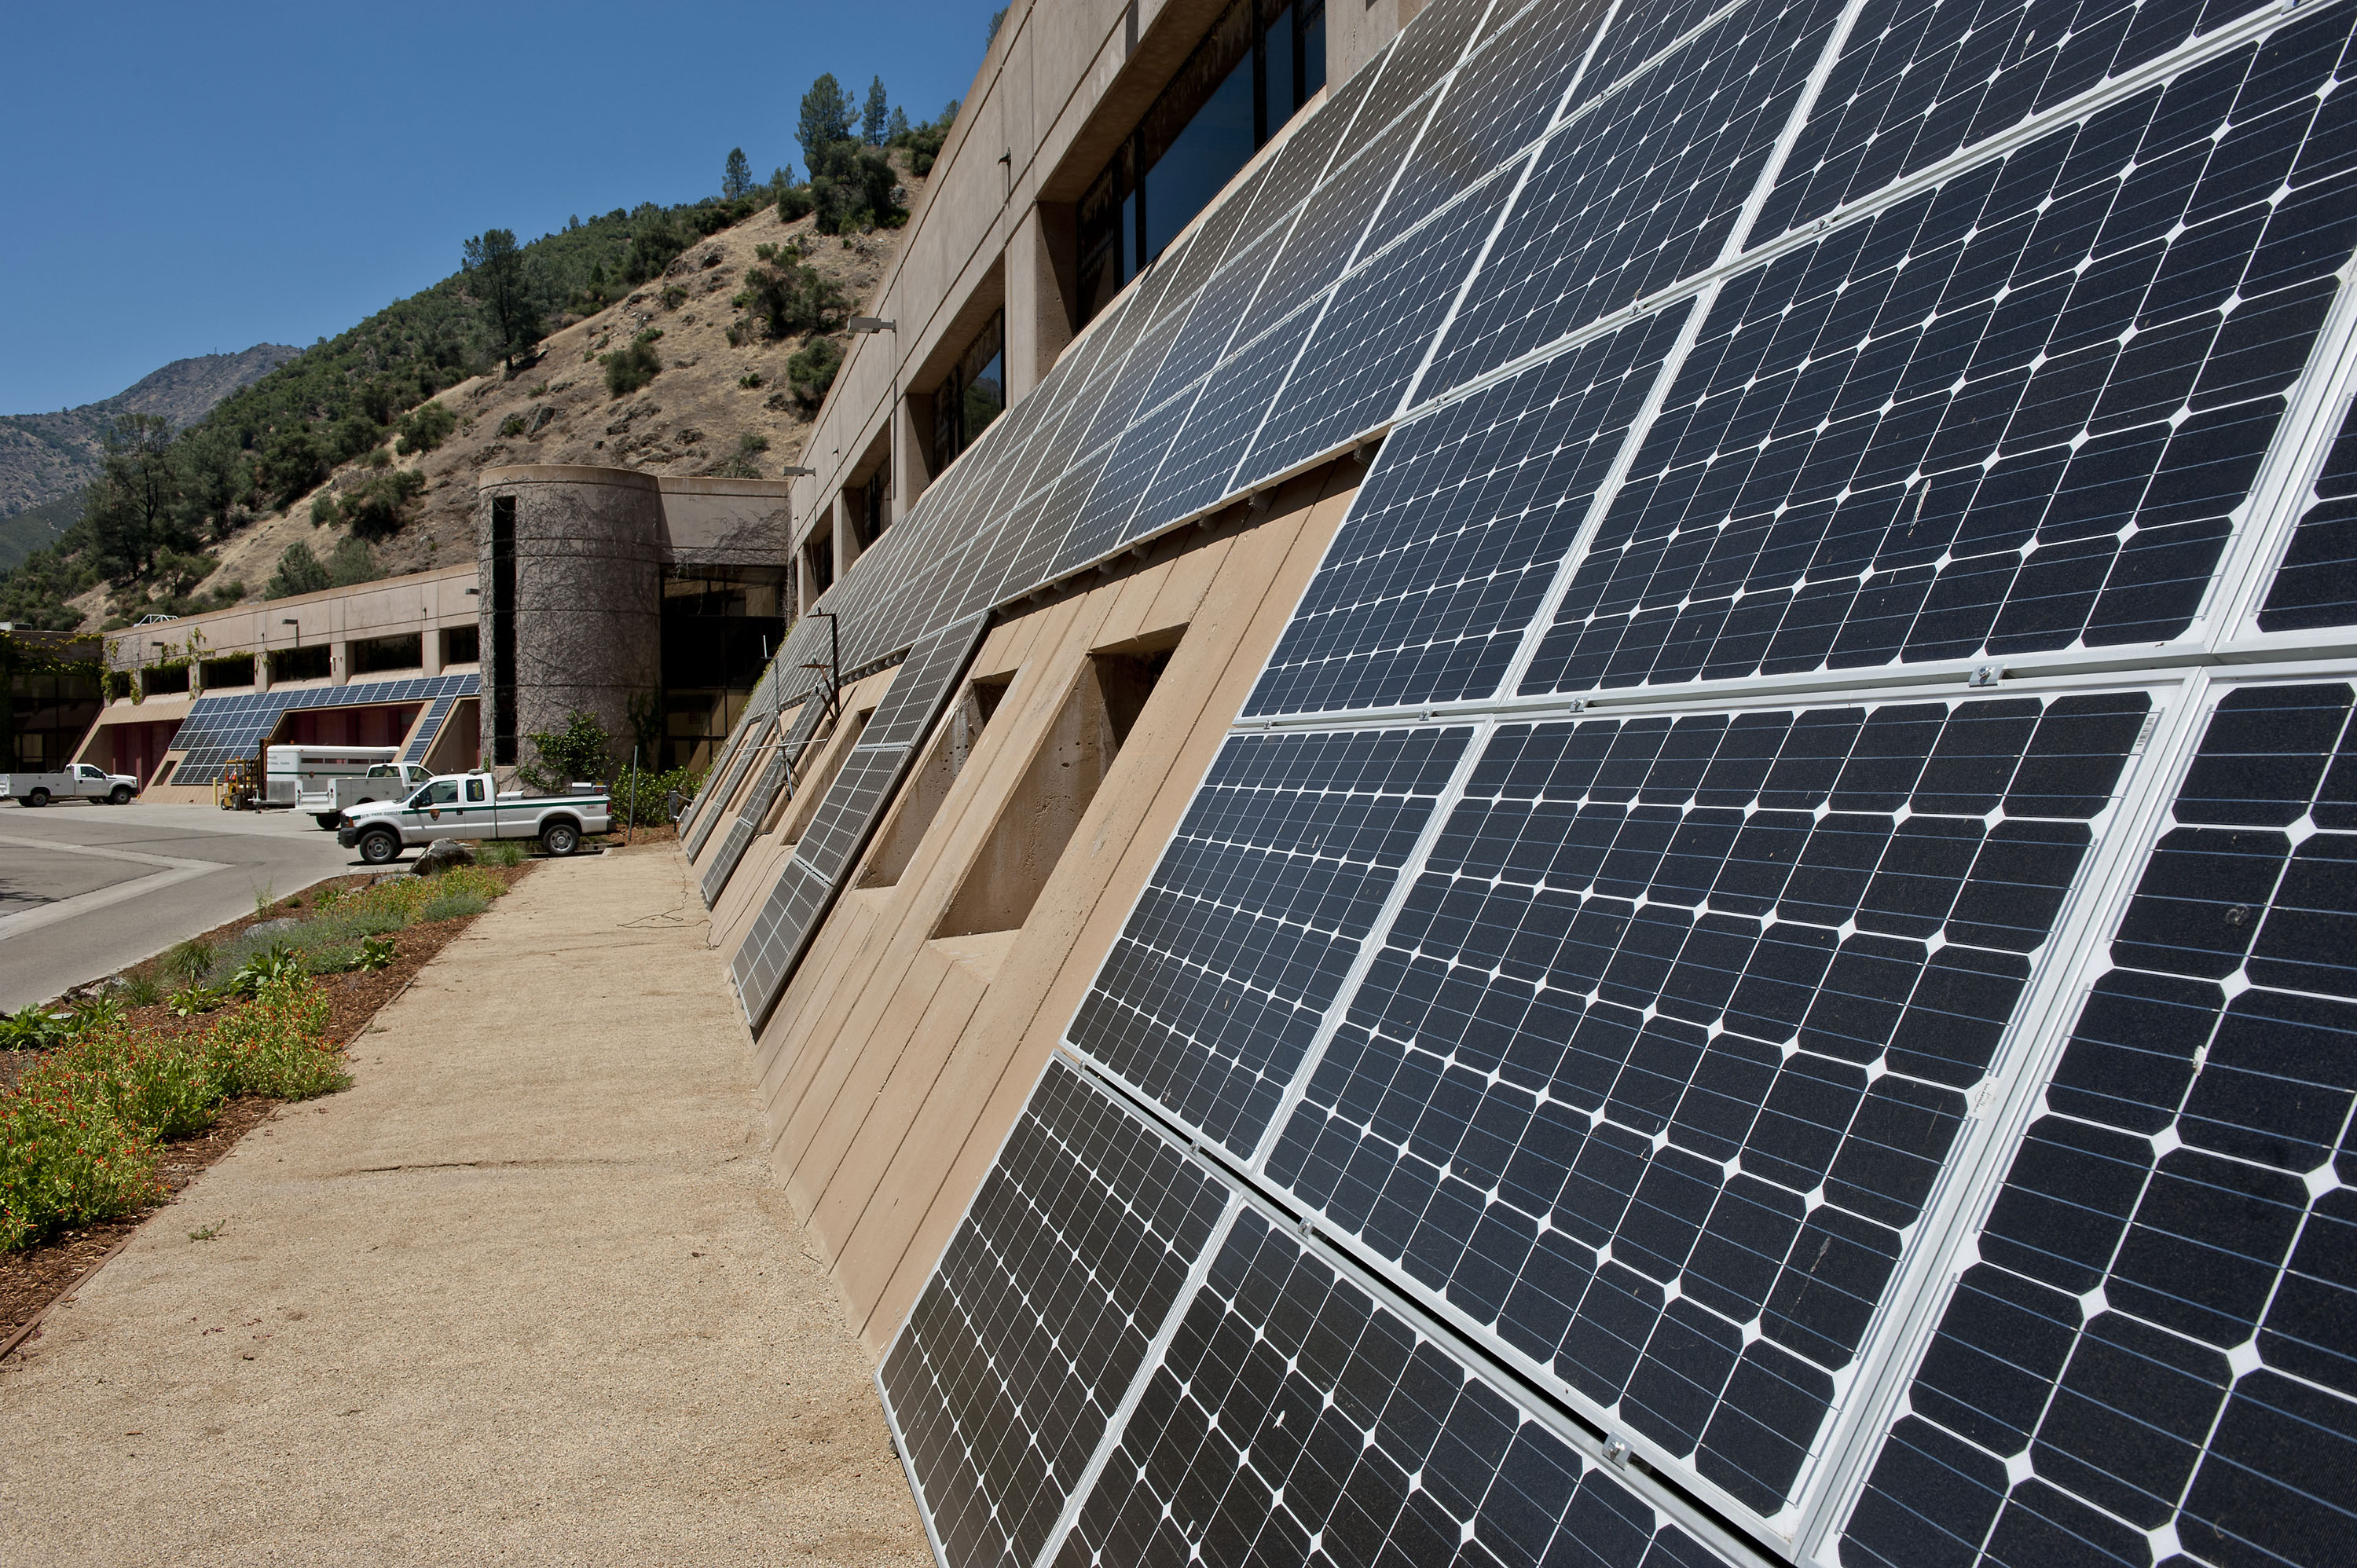 A portion of Yosemite National Park's new solar array.